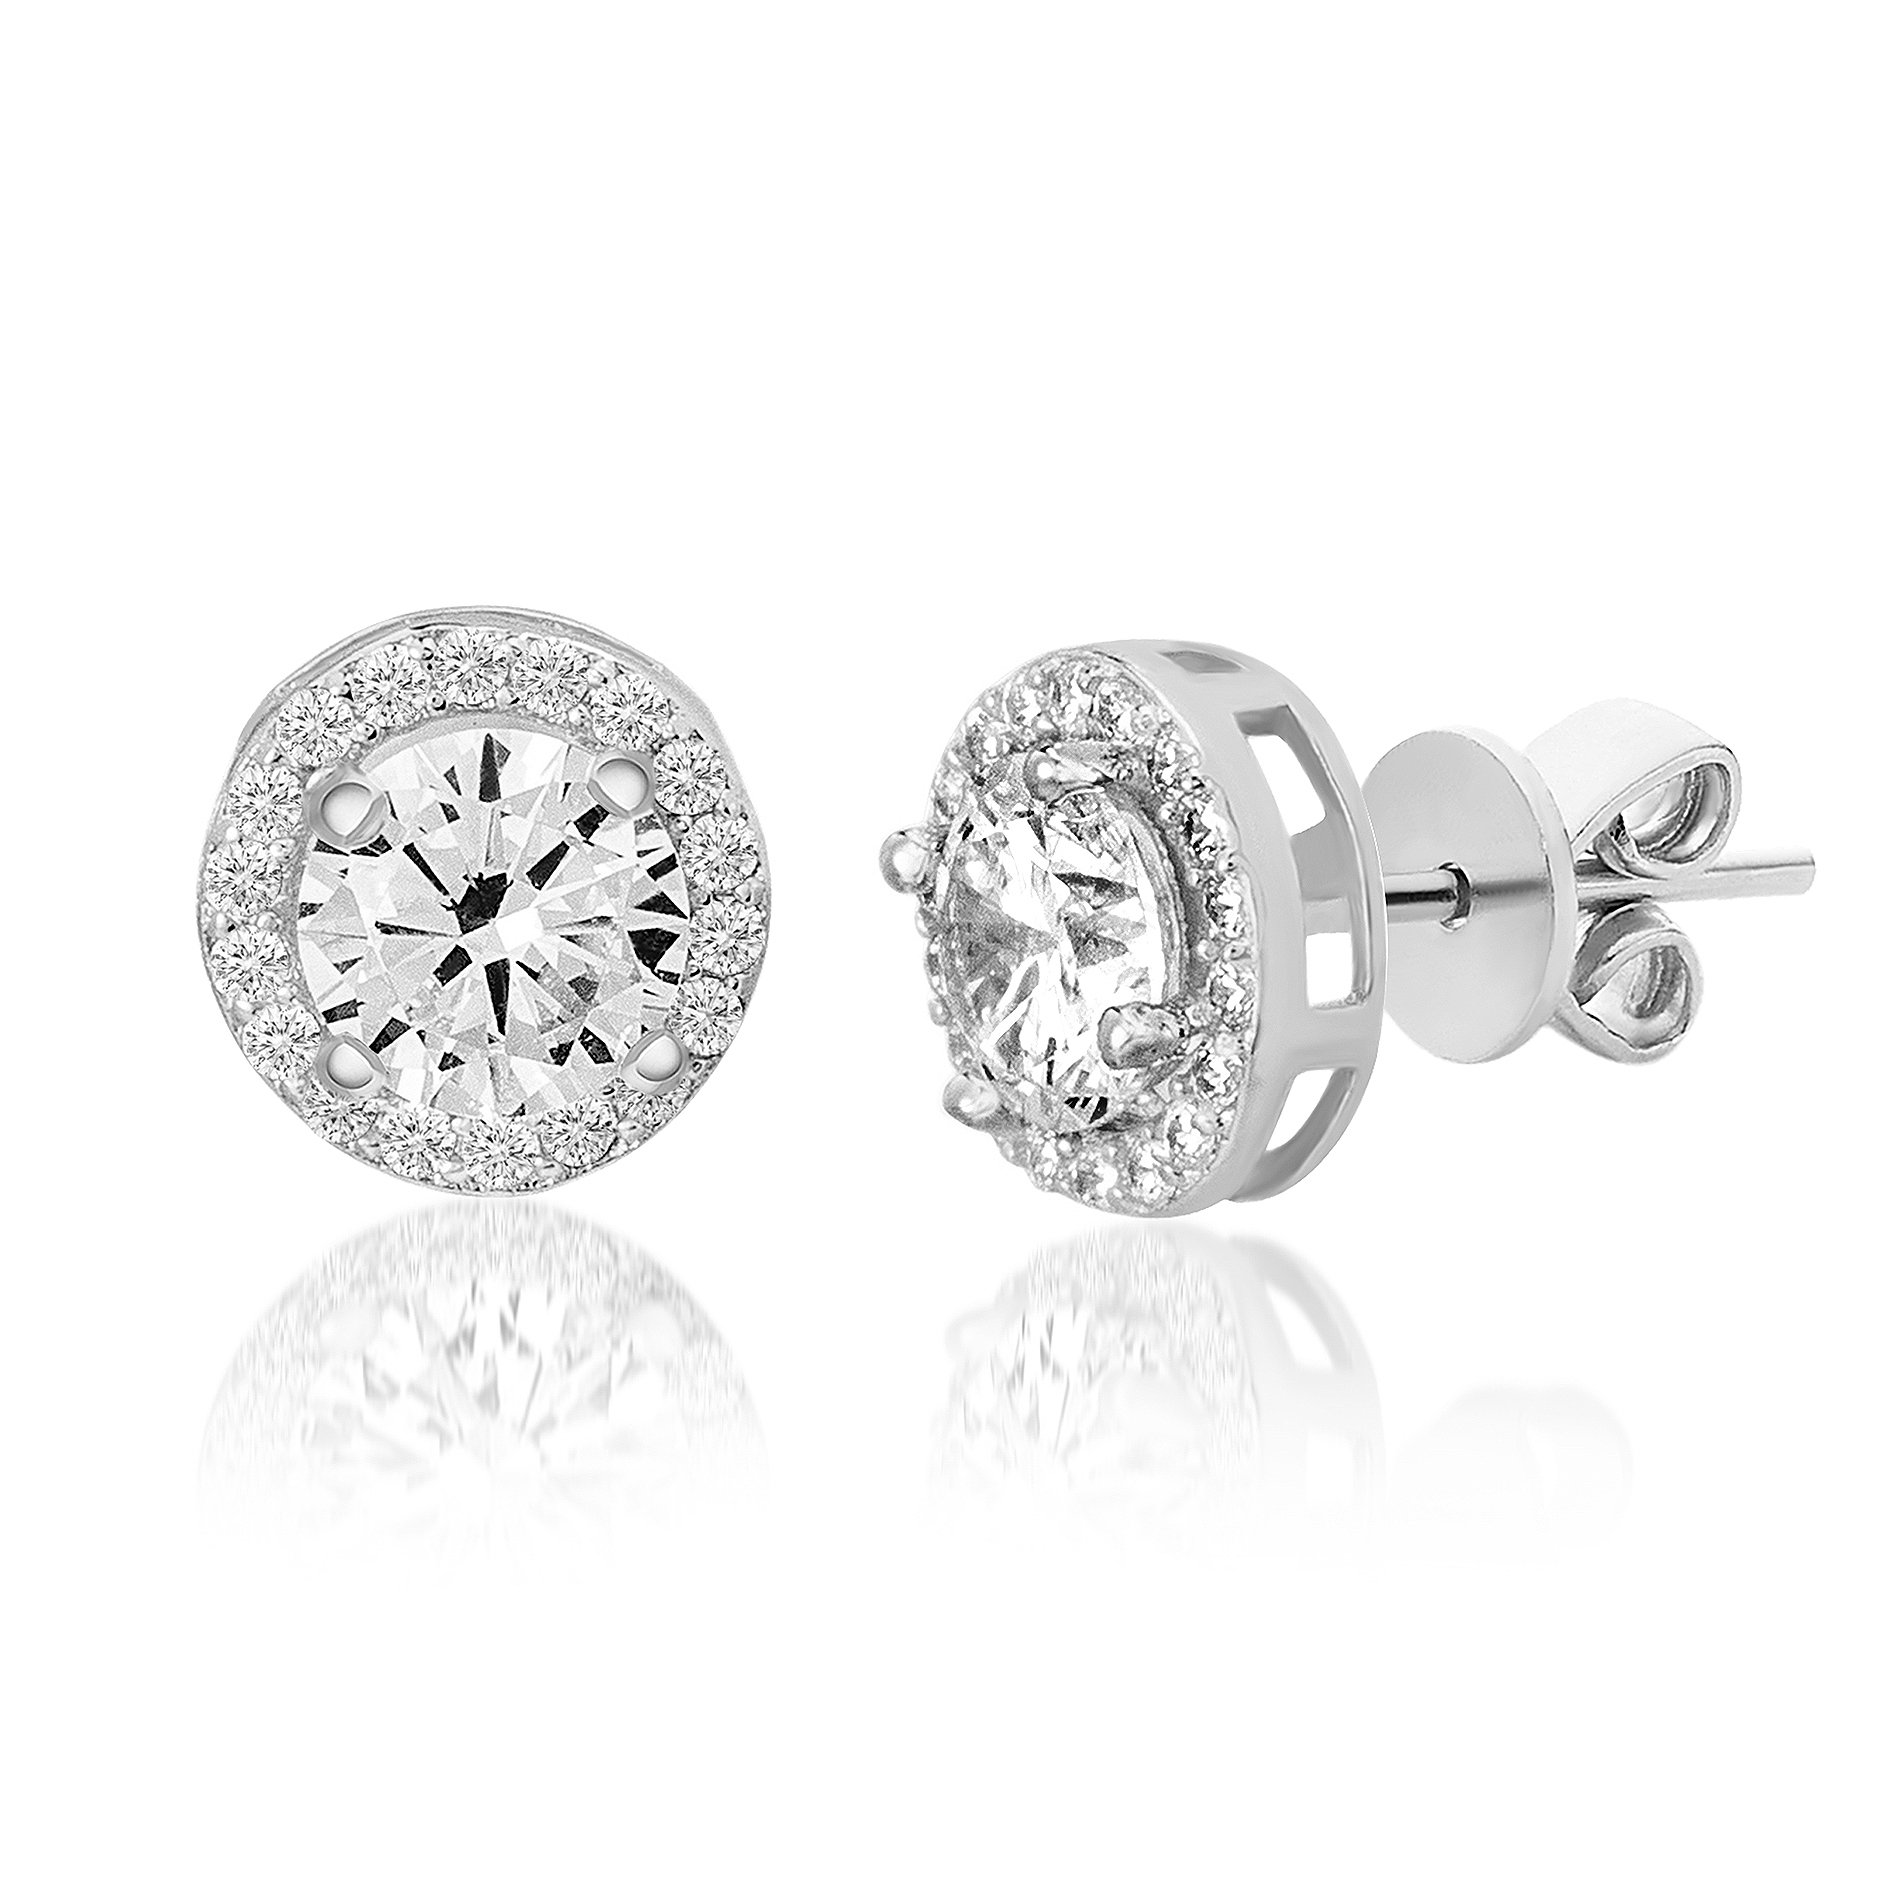 Devin Rose Women's Round Halo Stud Gift Earrings Made With Clear Swarovski Crystals in Sterling Silver (Crystal Imitation April Birthstone)